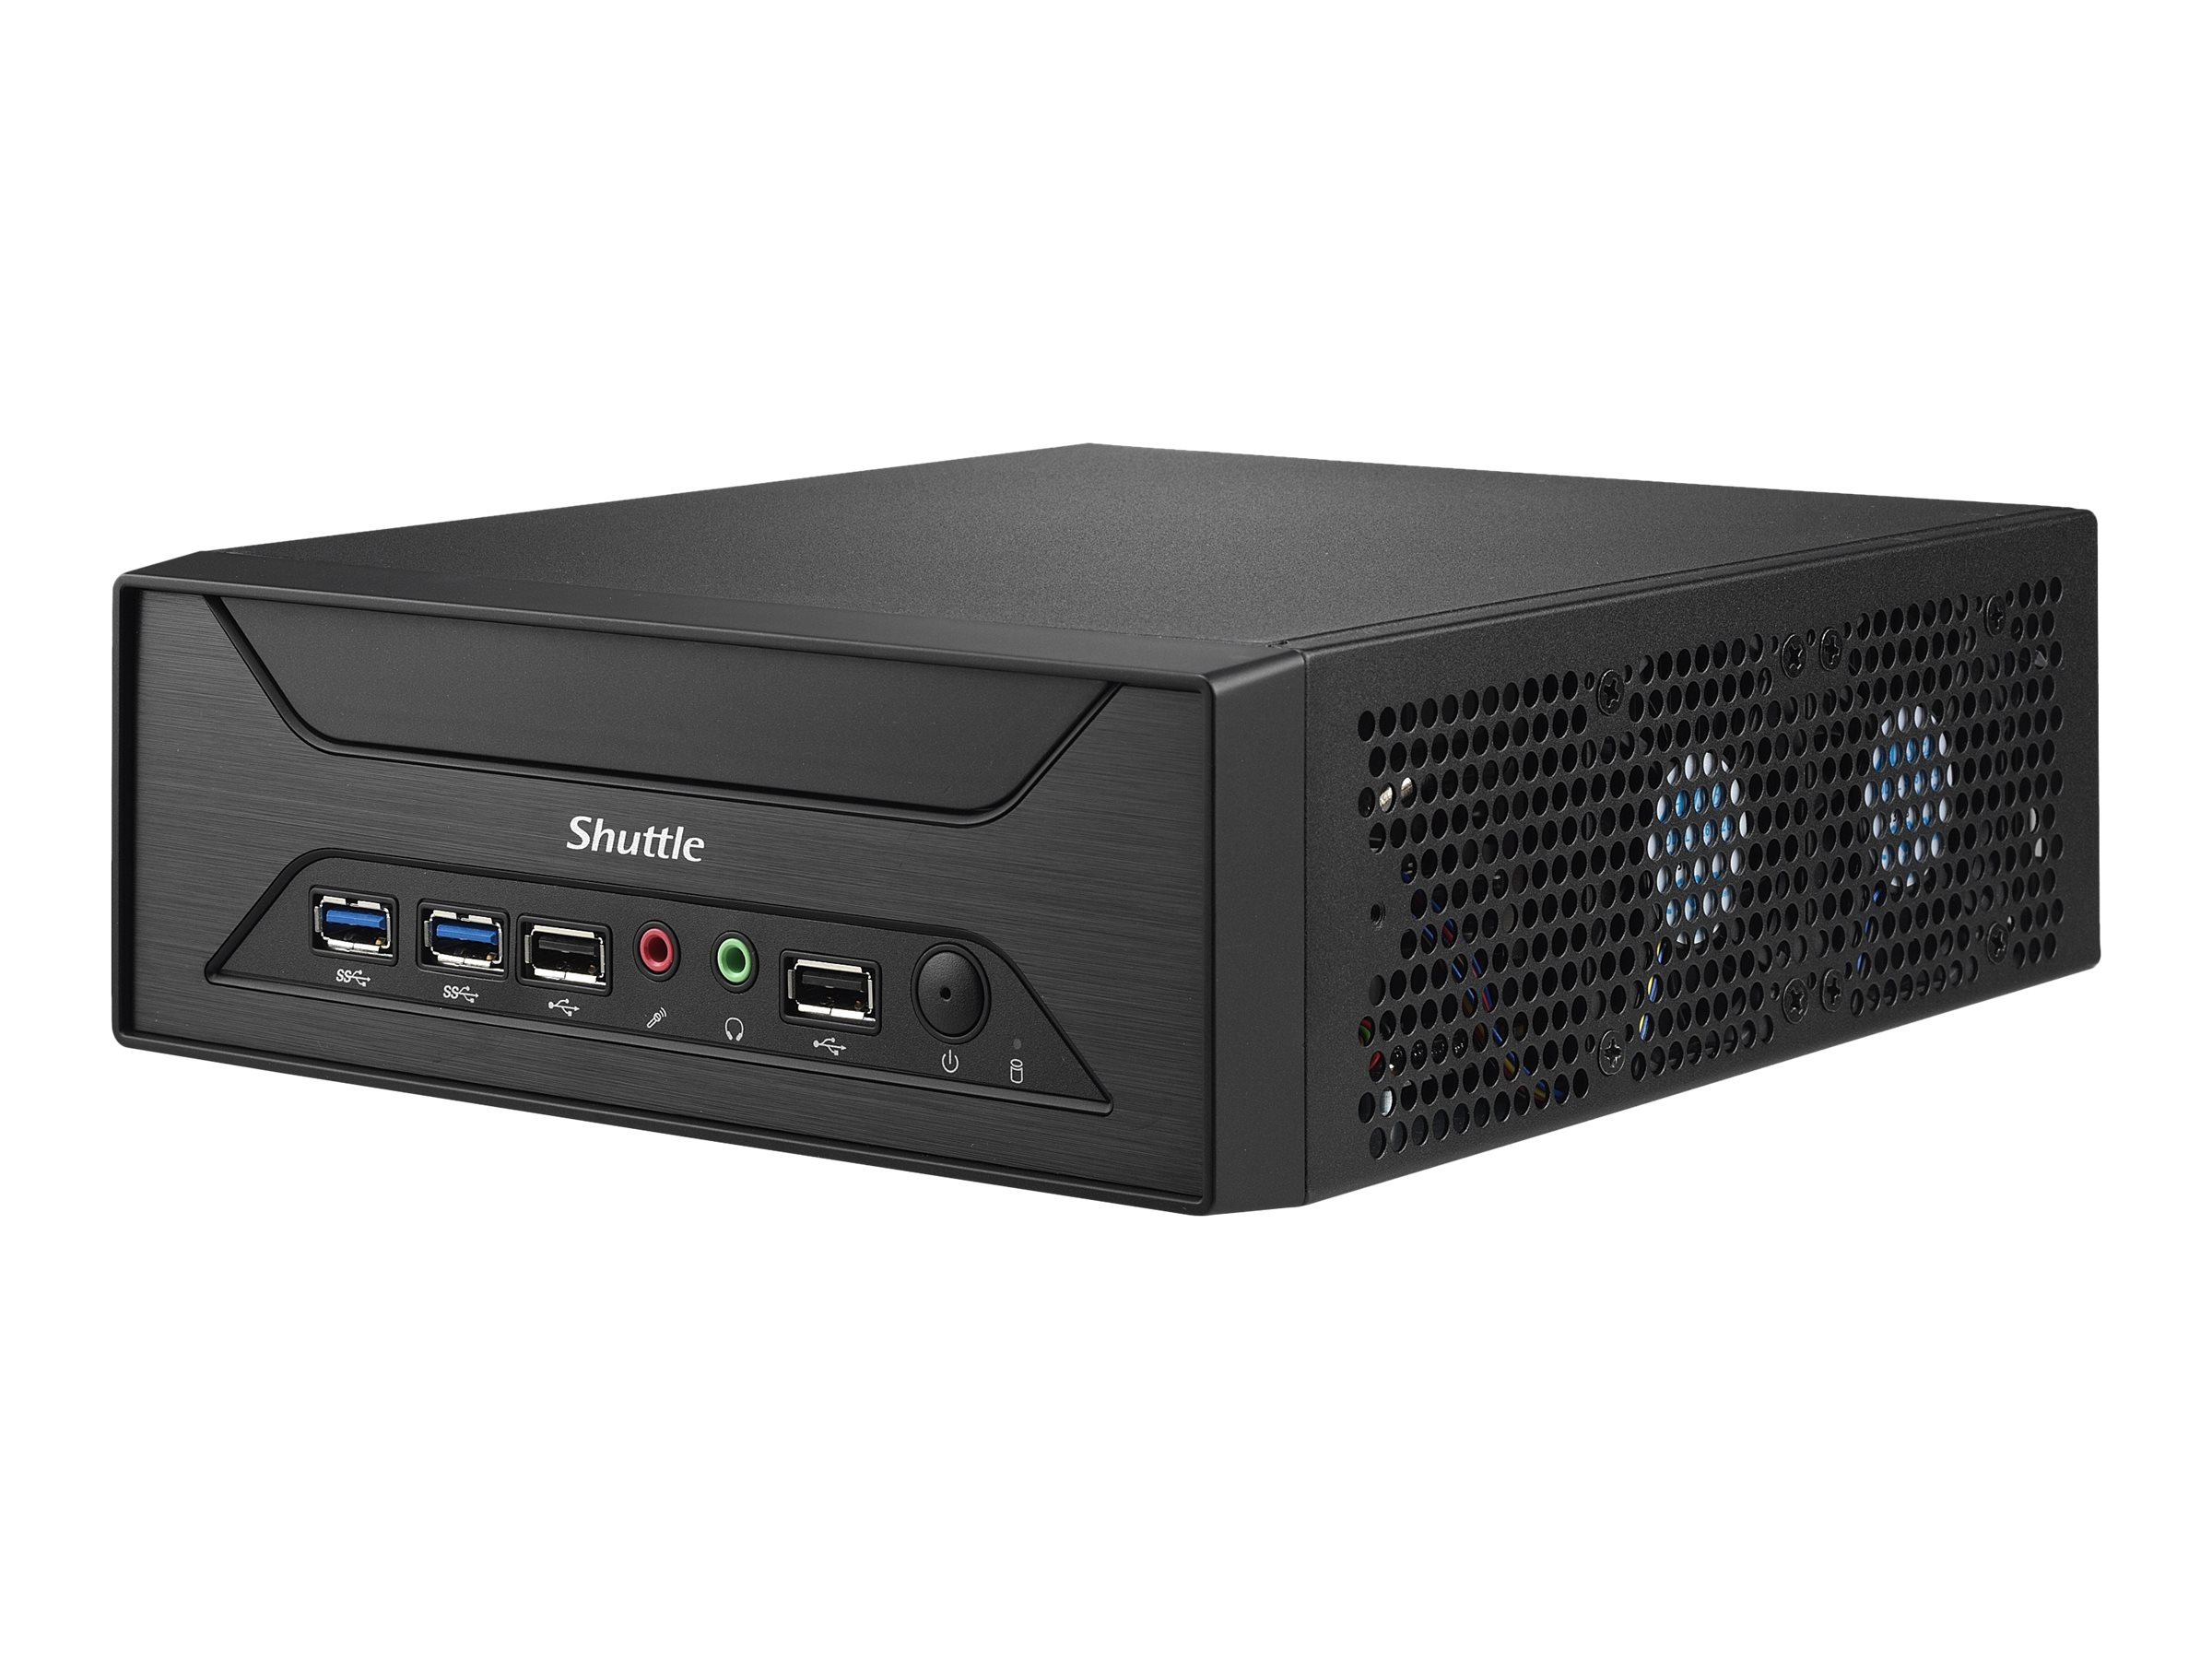 Shuttle XPC slim XH270 - Barebone - Slim-PC - LGA1151 Socket - Intel H270 - GigE